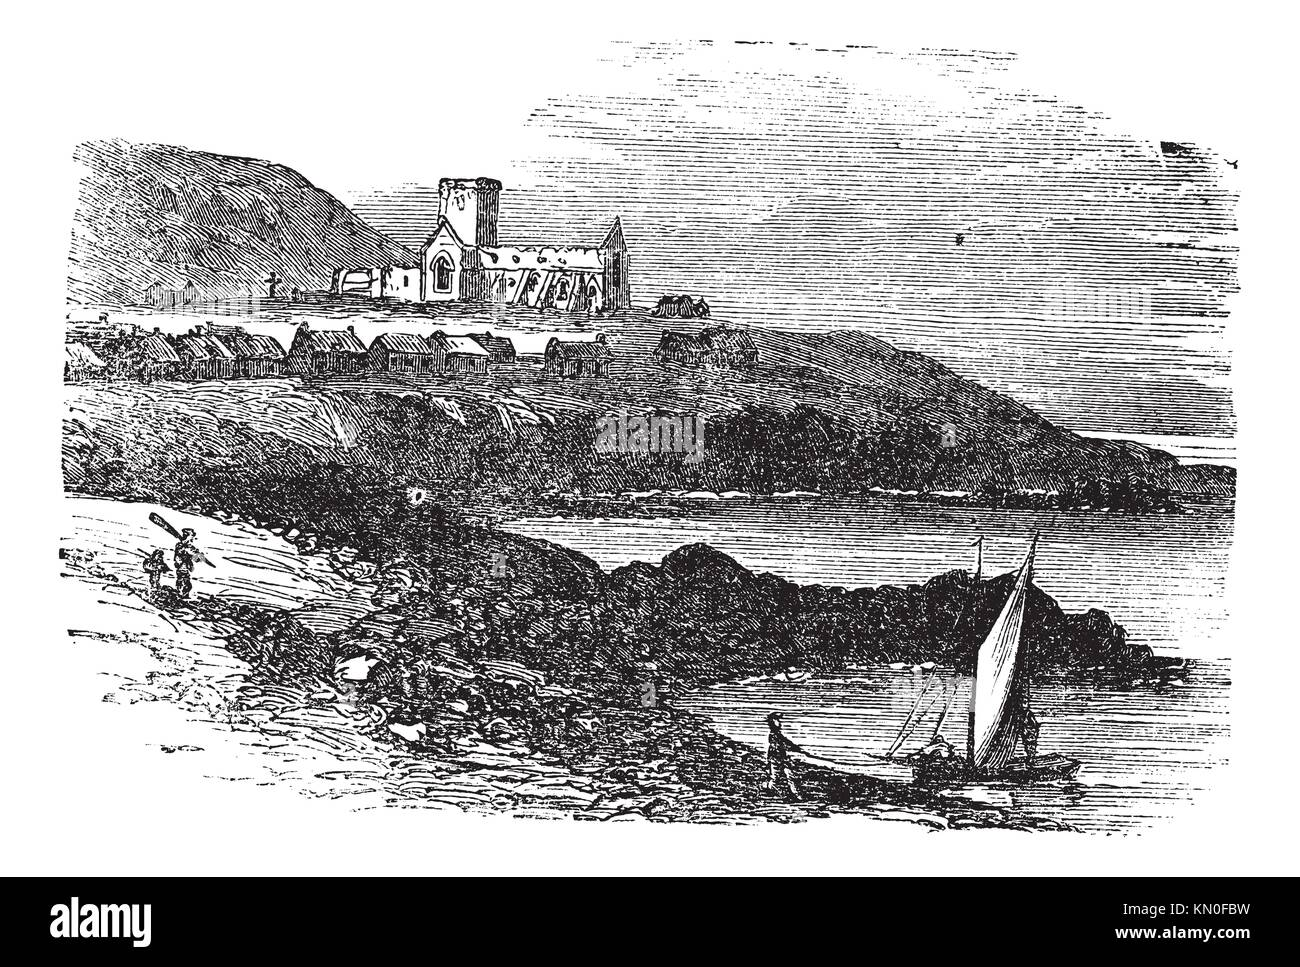 The ruins of St Mary´s Abbey in Iona, Scotland, during the 1890s, vintage engraving  Old engraved illustration - Stock Image